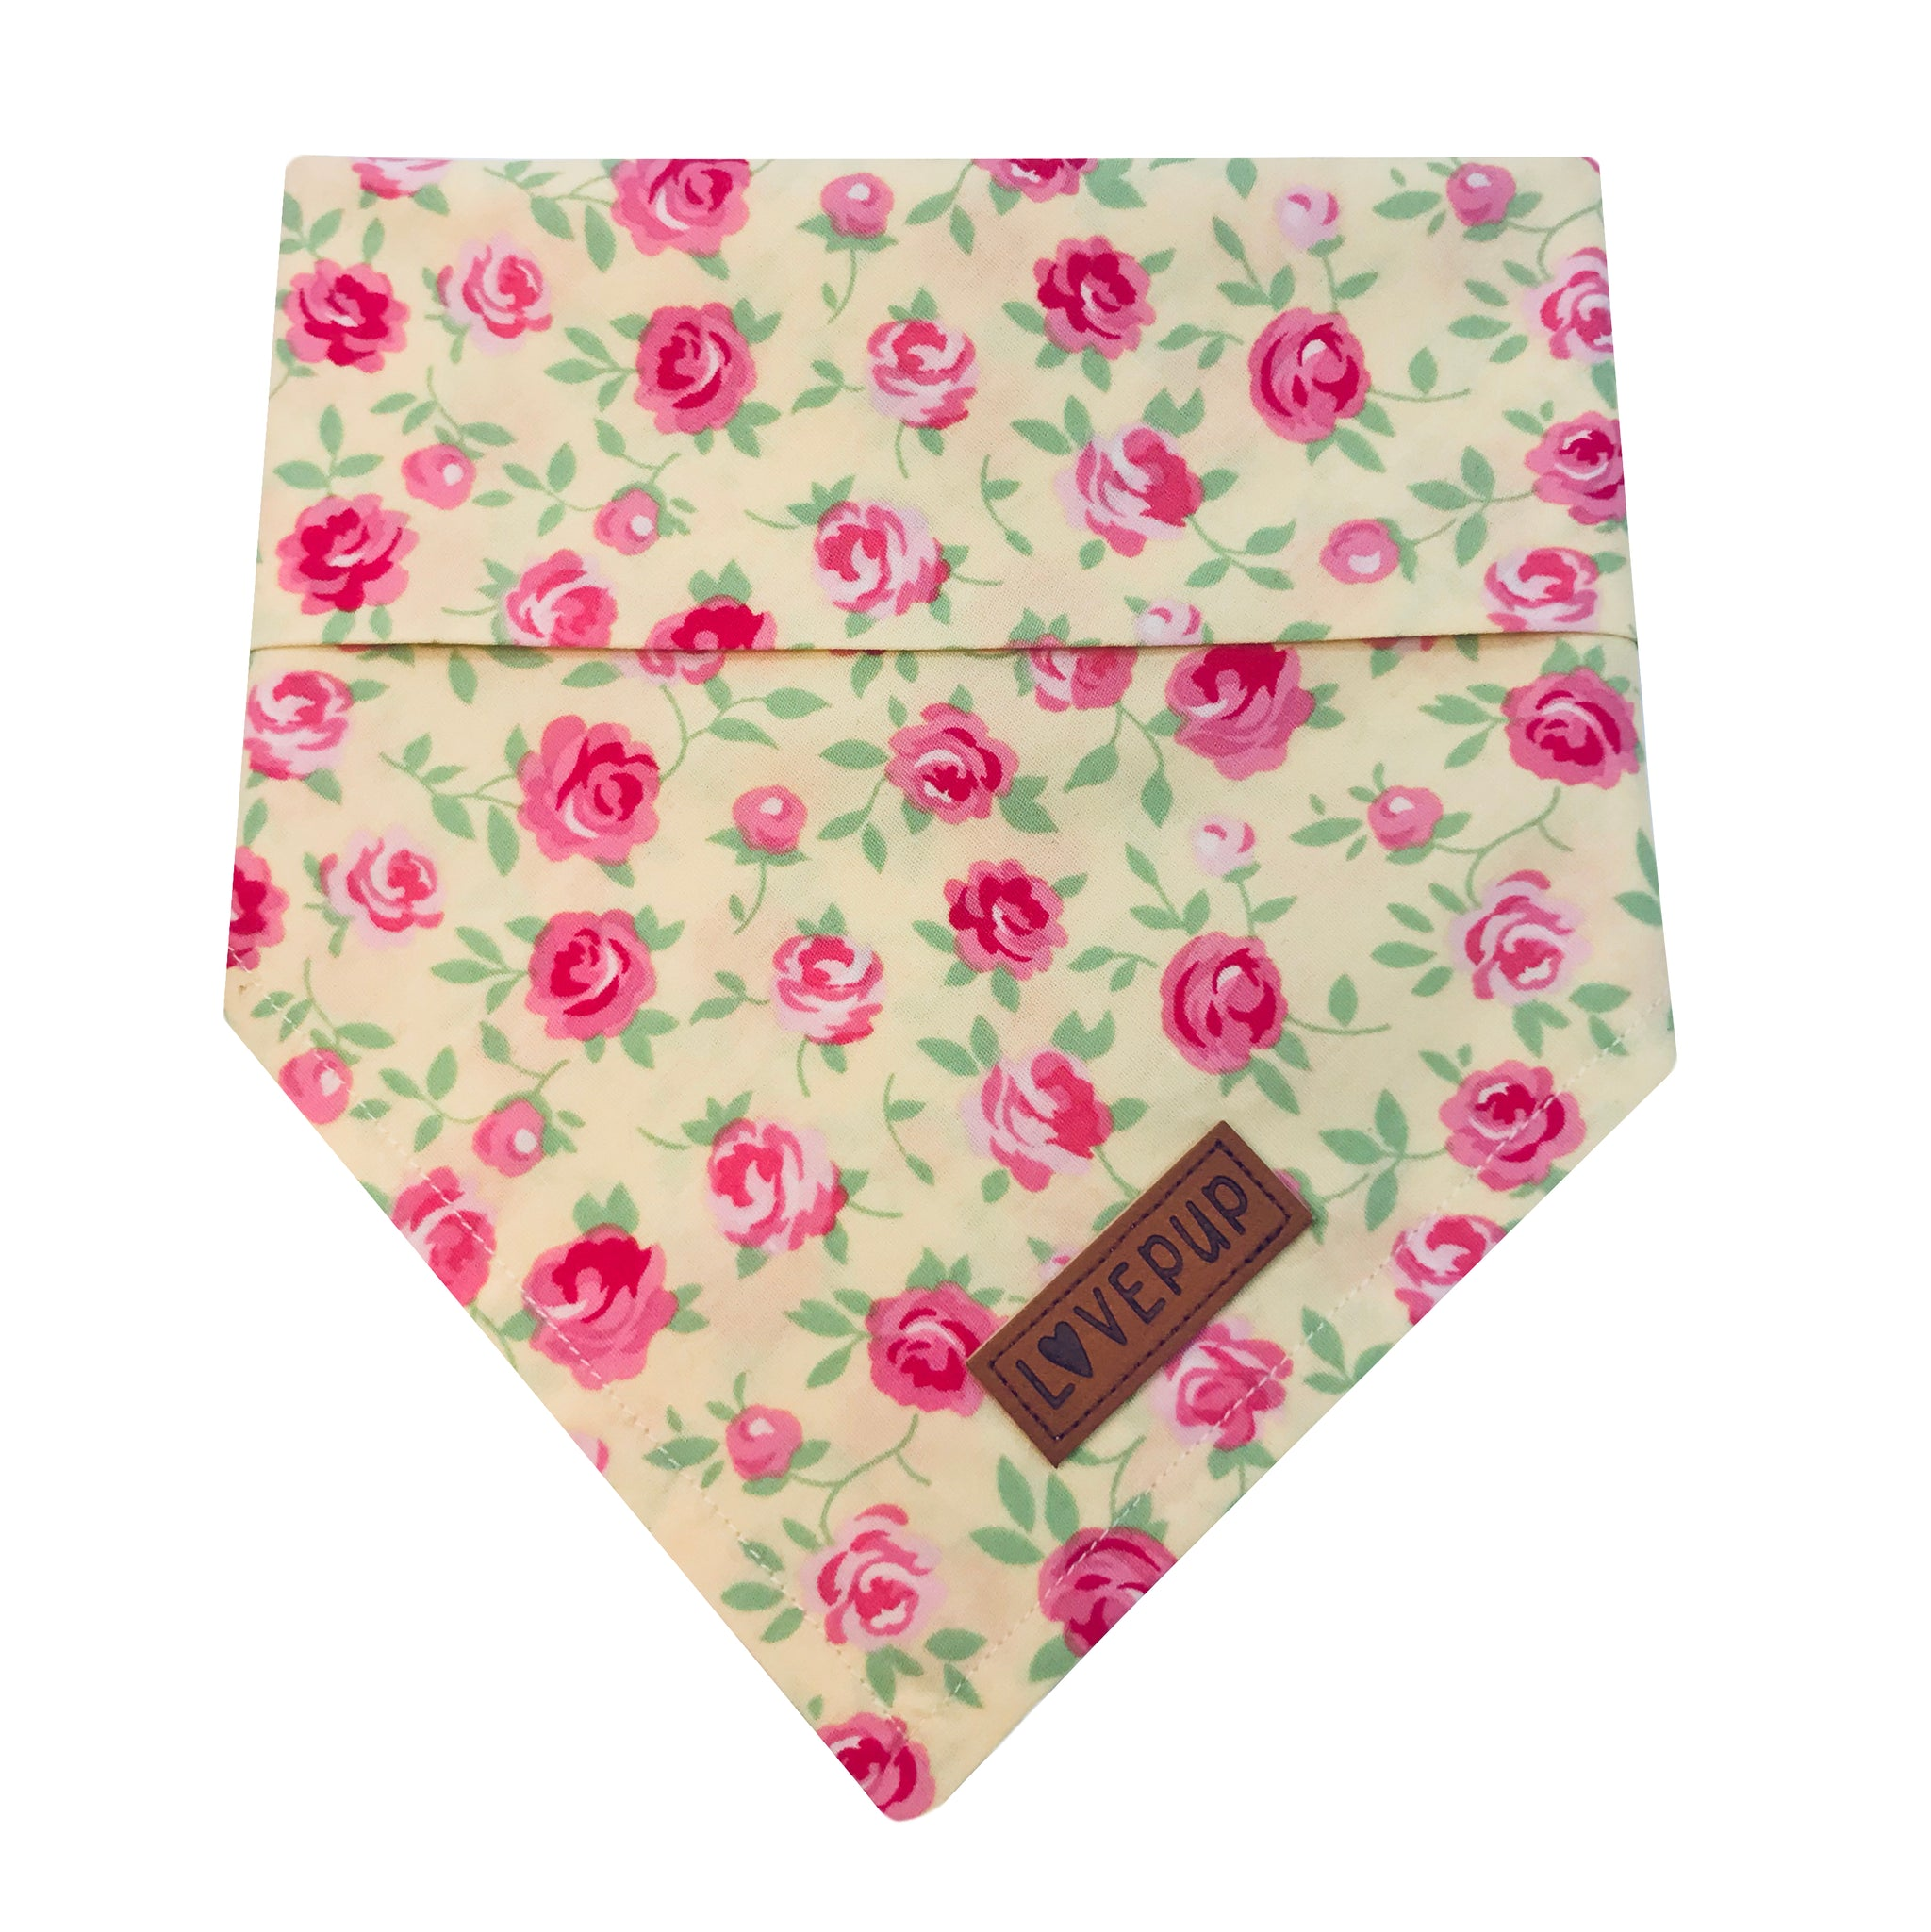 Garden Party Bandana | LOVEPUP